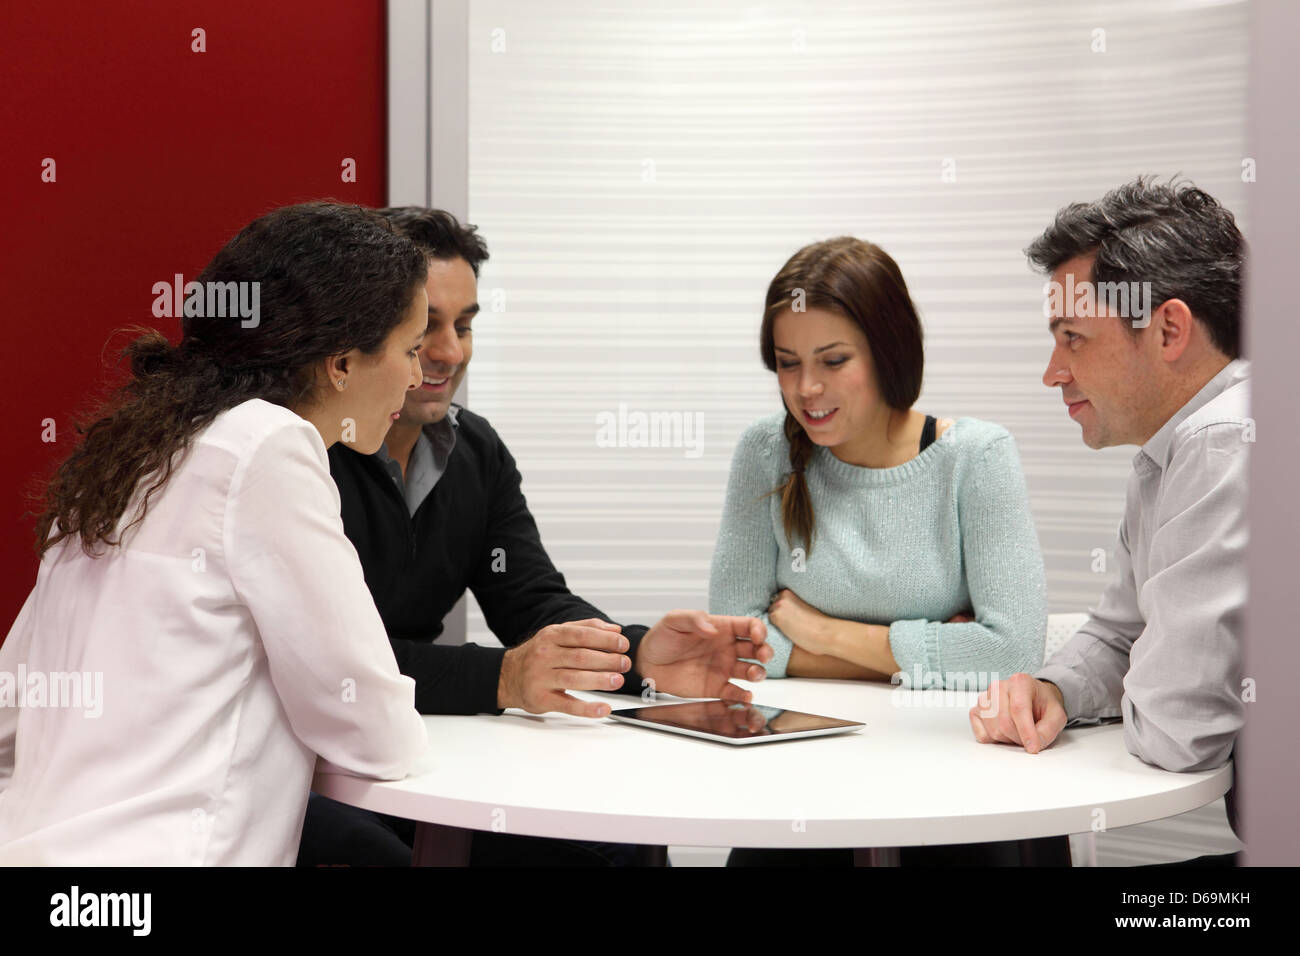 Business people using tablet computer - Stock Image